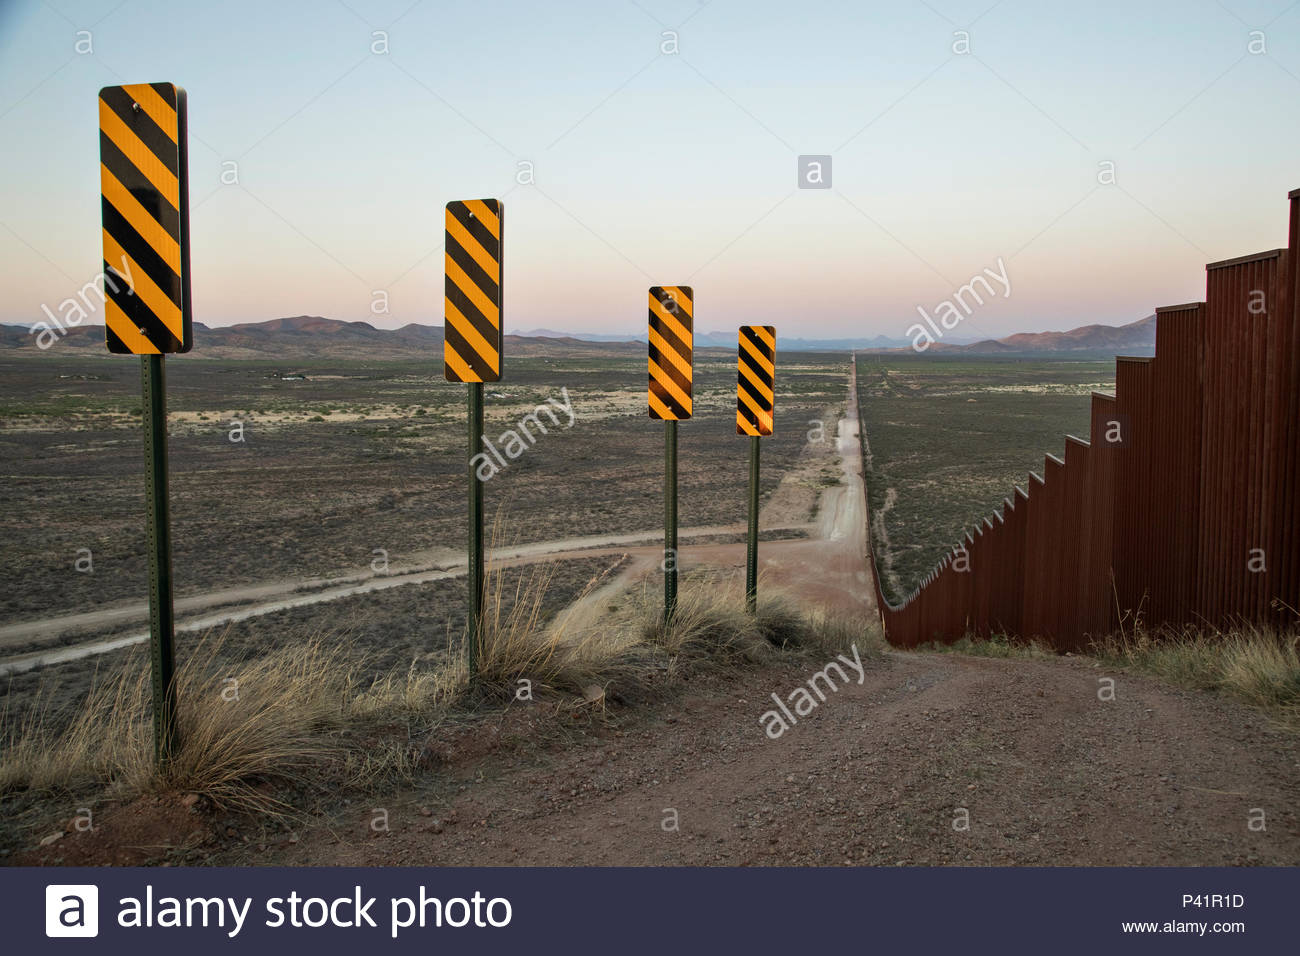 The United States-Mexico border wall in southern Arizona. - Stock Image